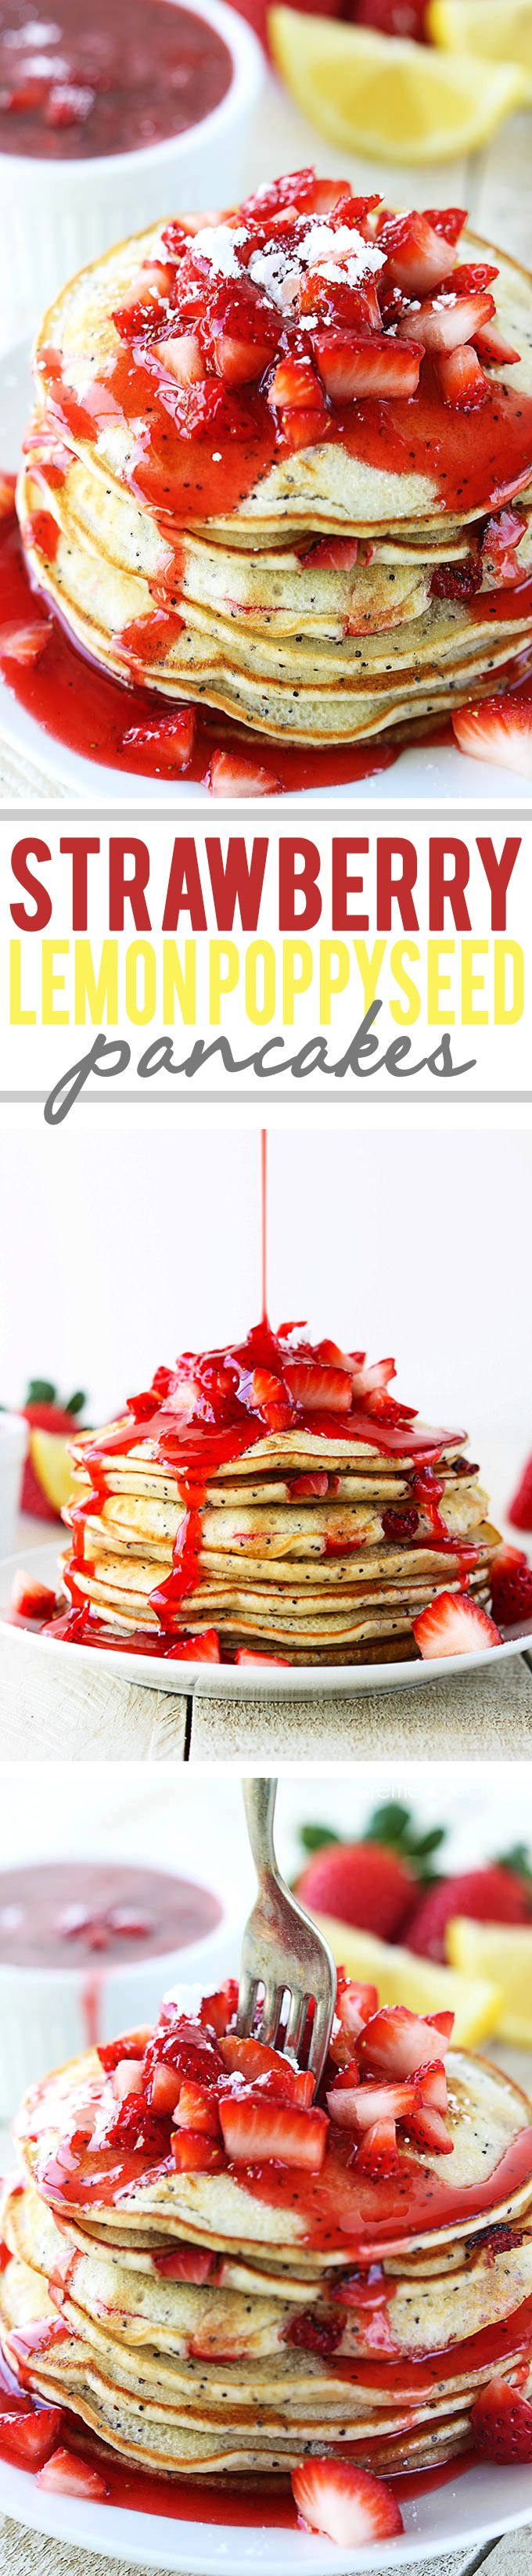 Strawberry & Lemon Poppyseed Pancakes